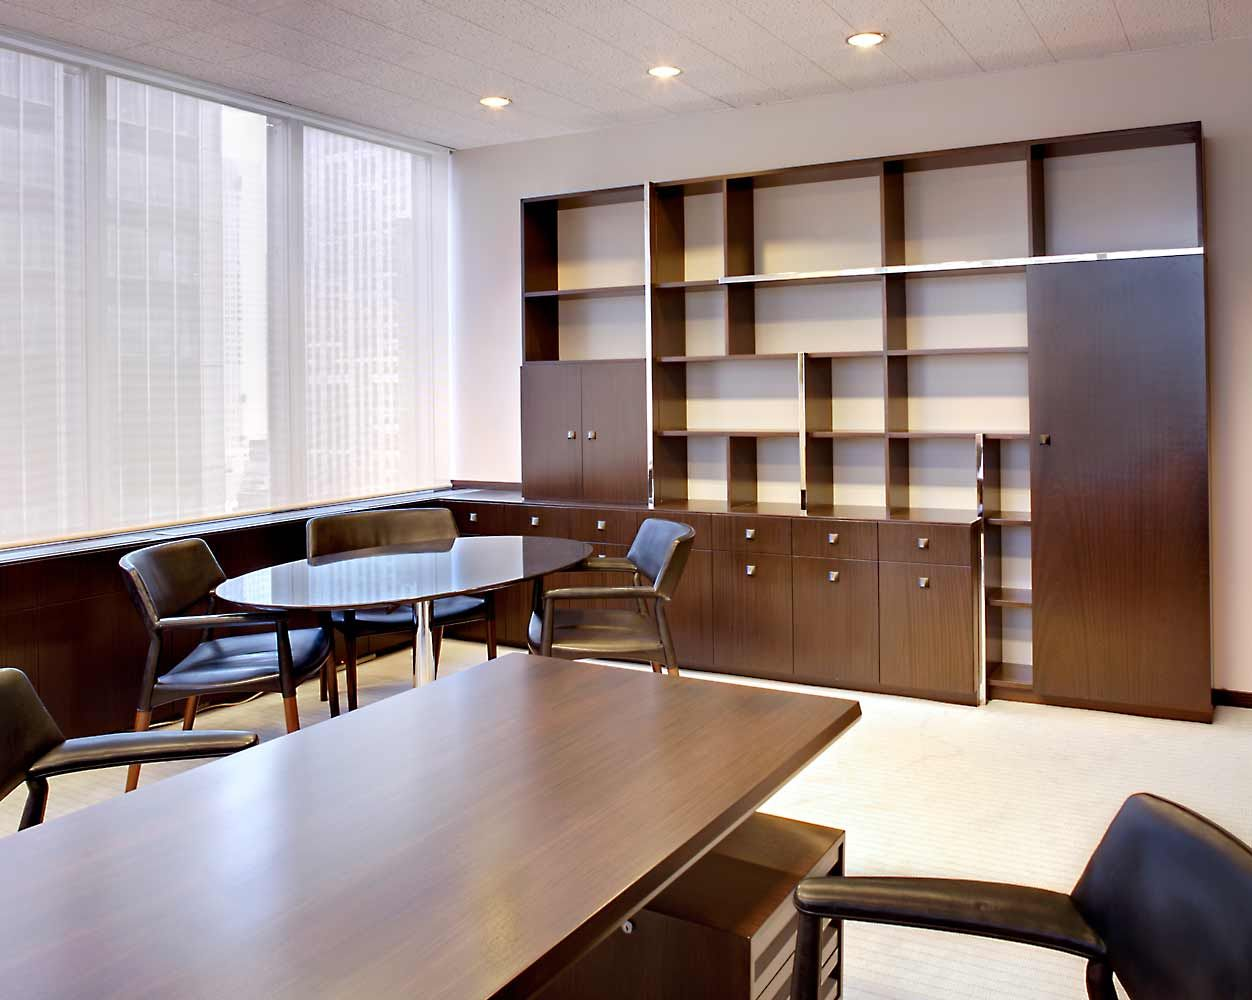 13 Law Office Design And Concept Office Interior Design Law